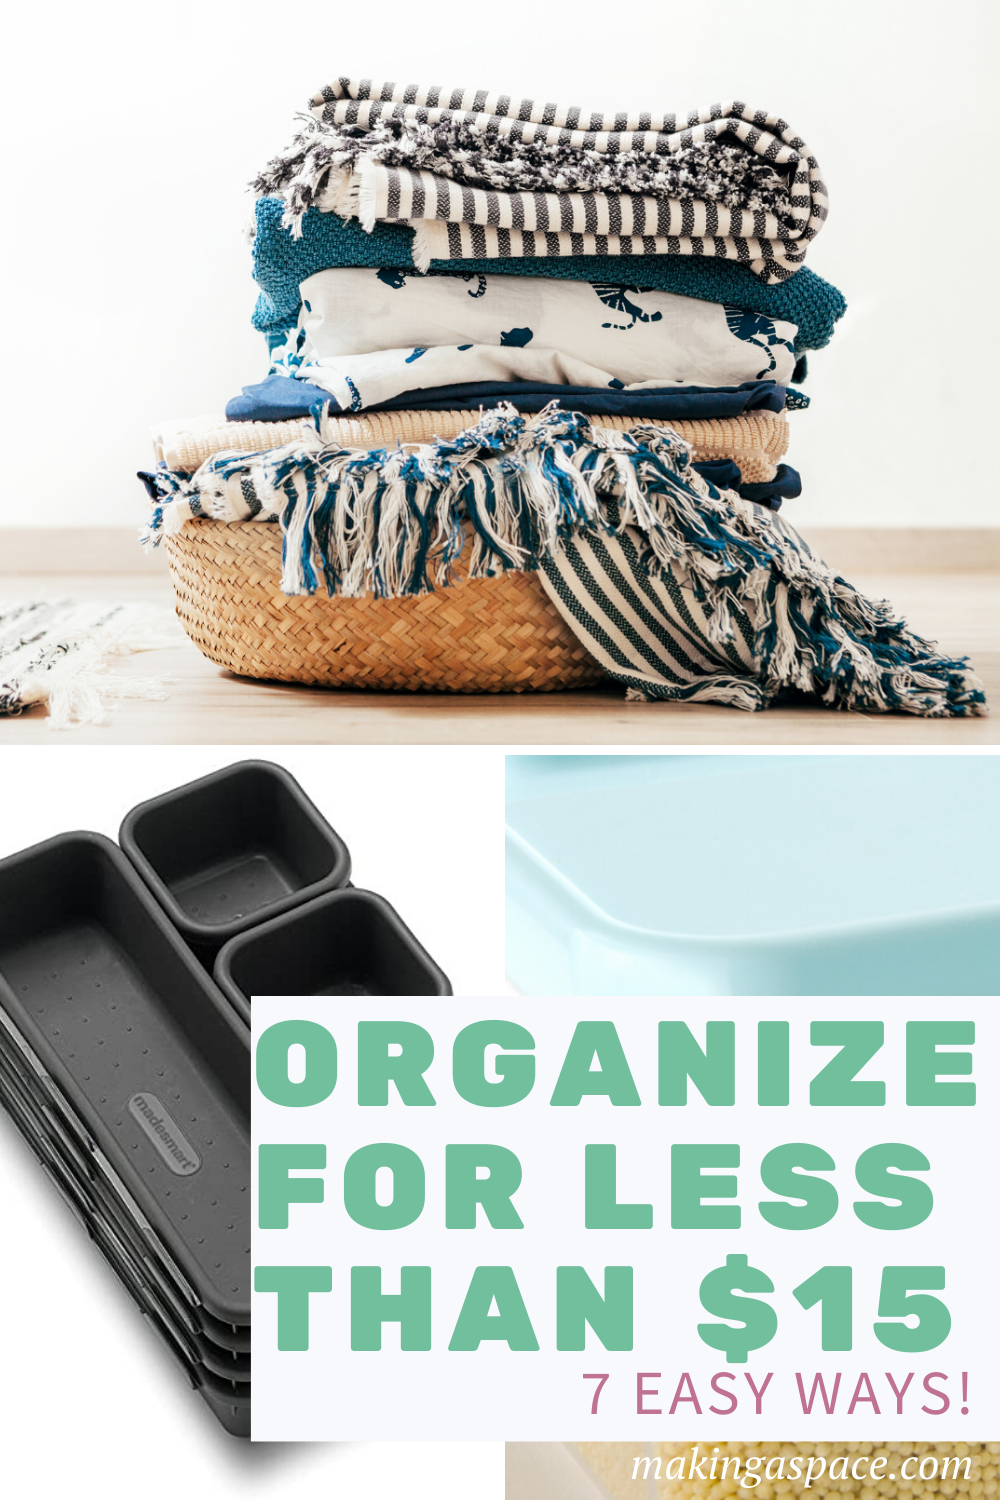 Best ways to organize for cheap!